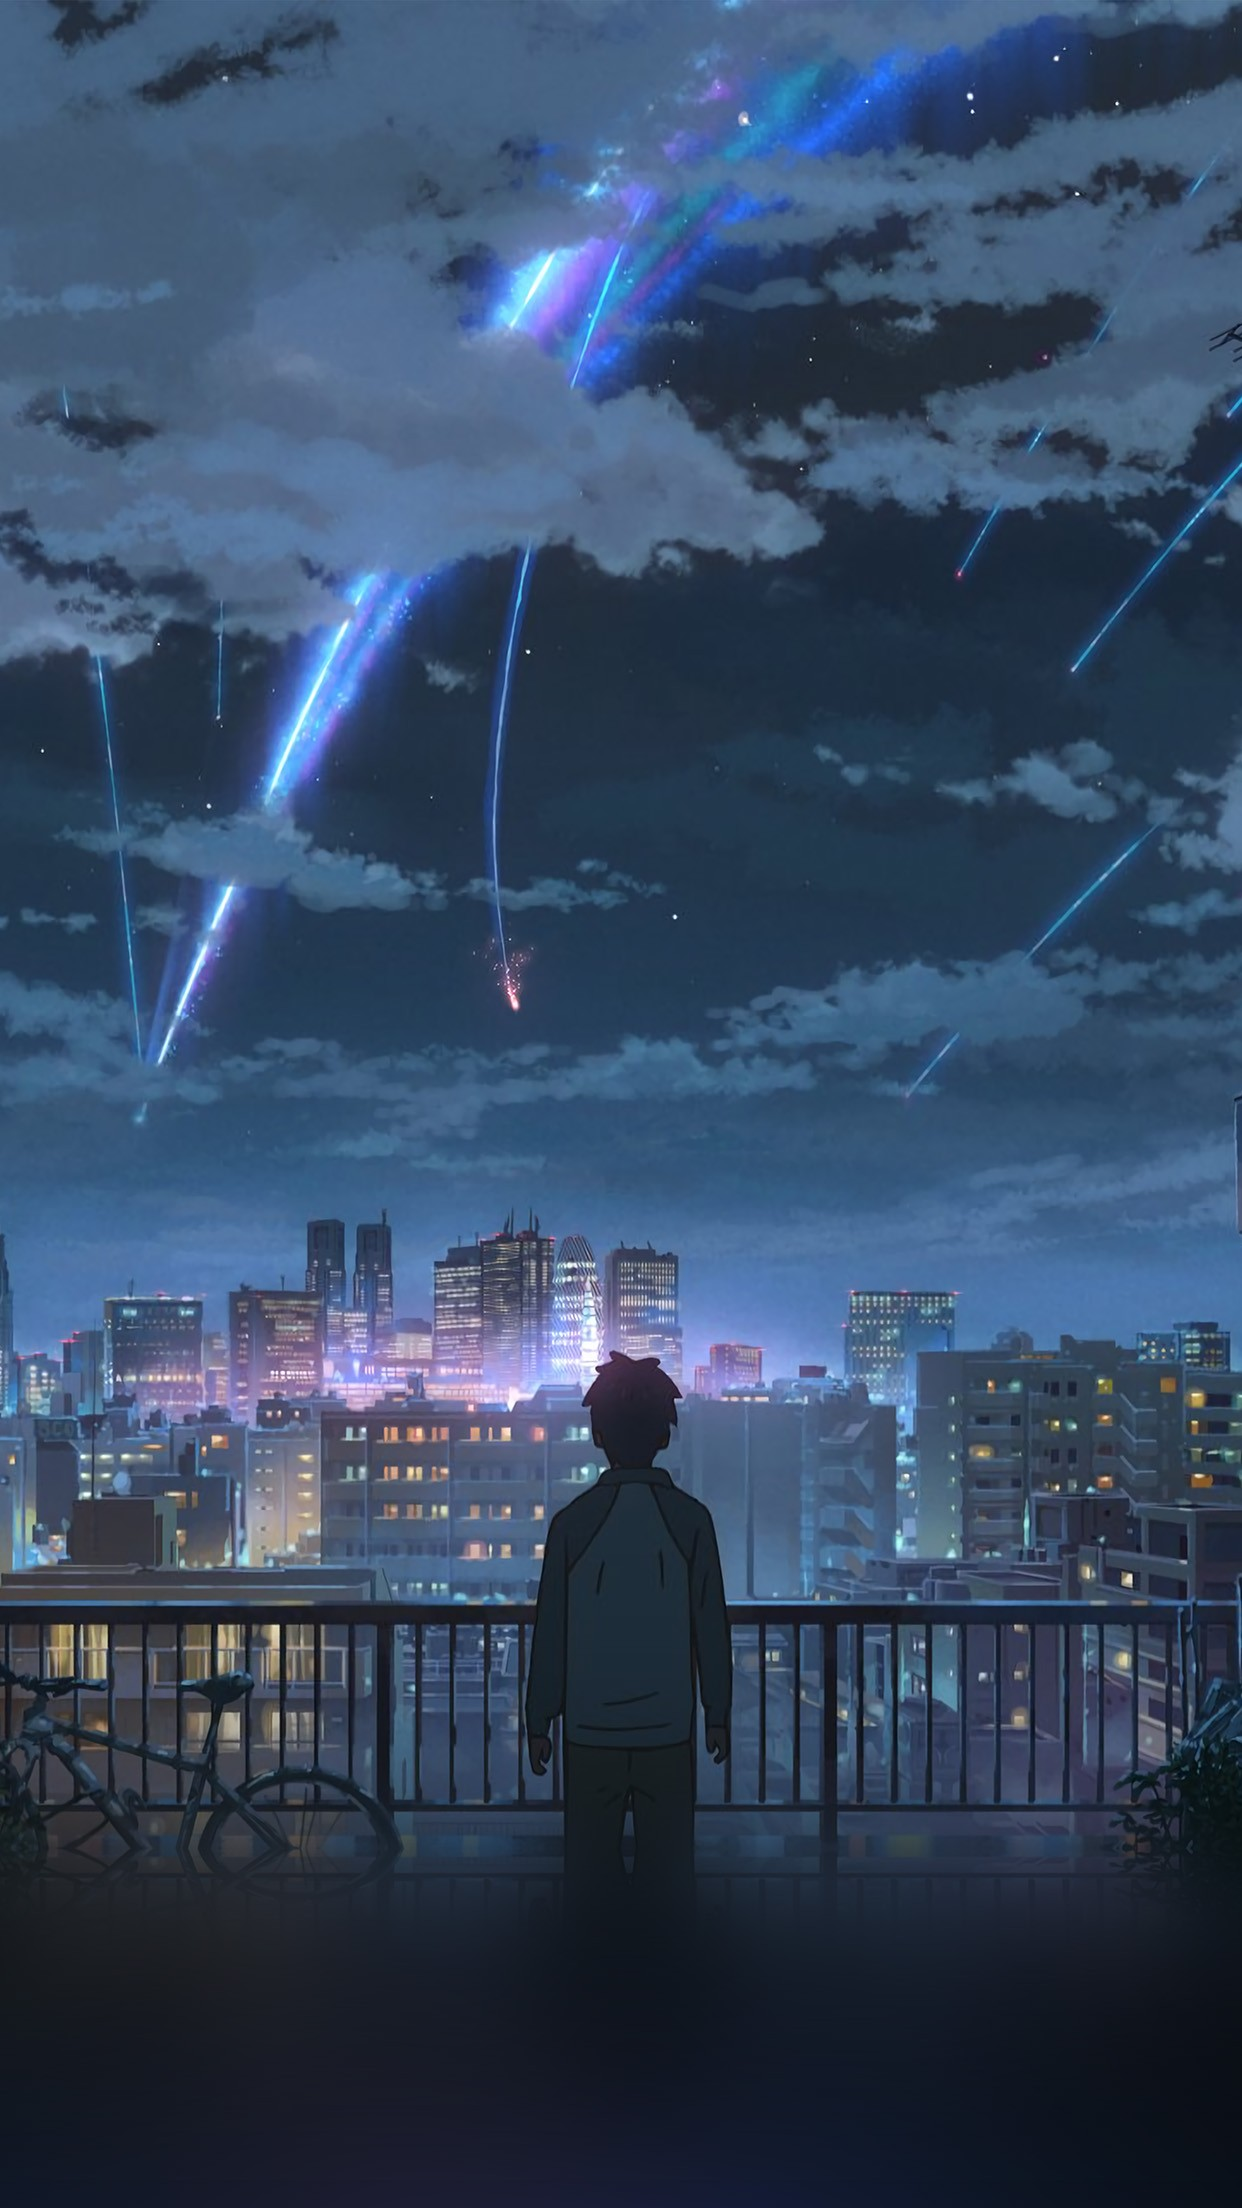 Wallpaper Android Hd Yourname Night Anime Sky Illustration